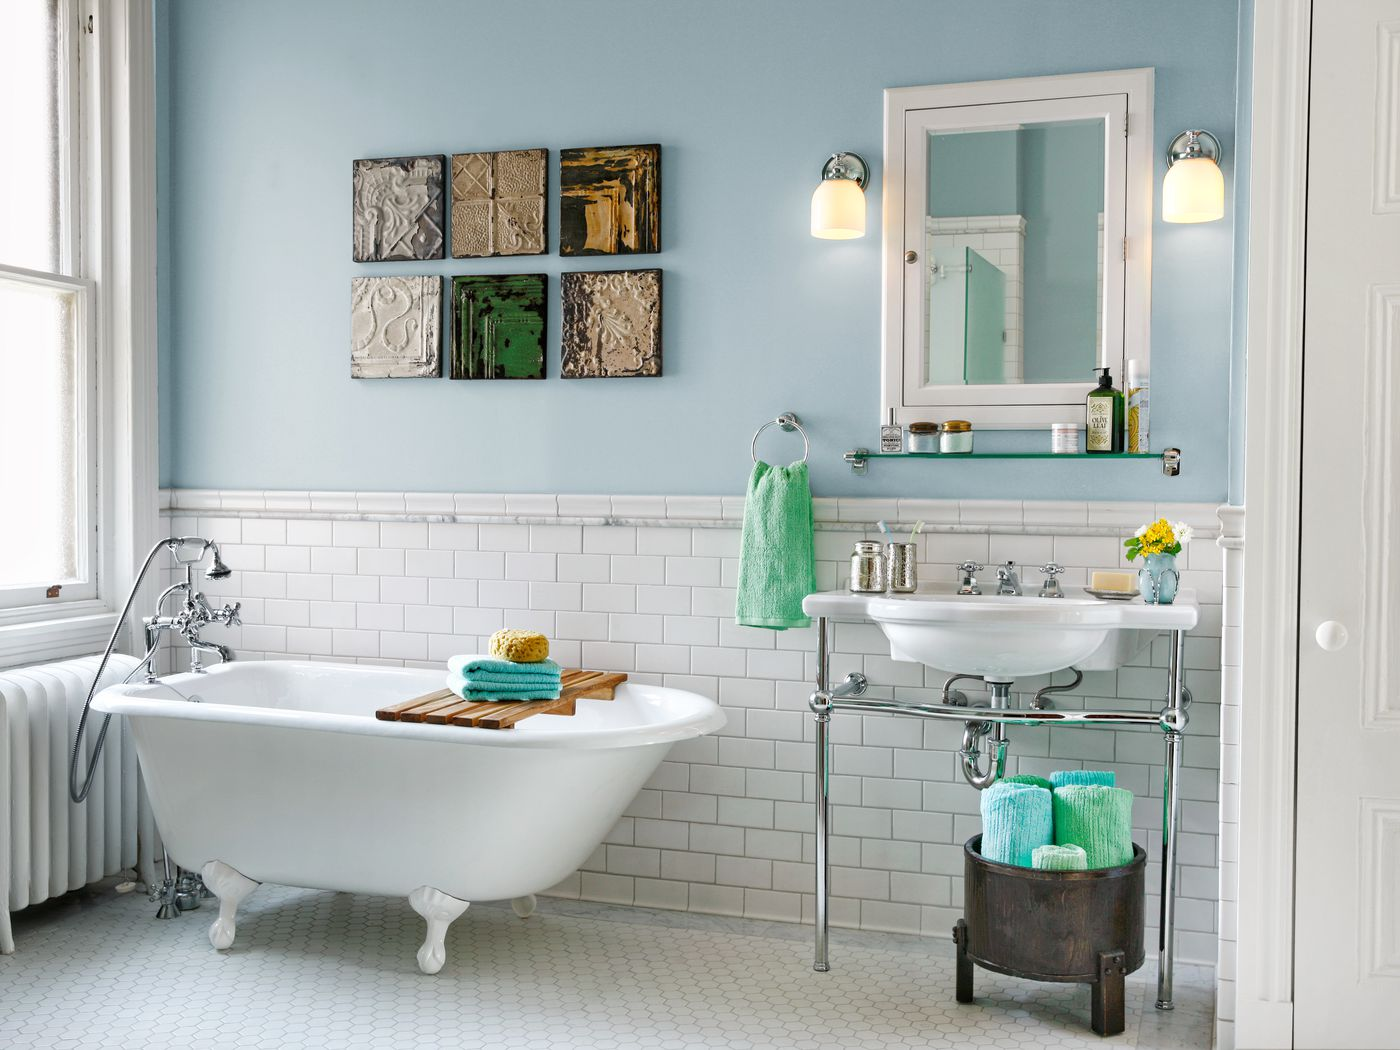 How To Tile A Tub Surround This Old House